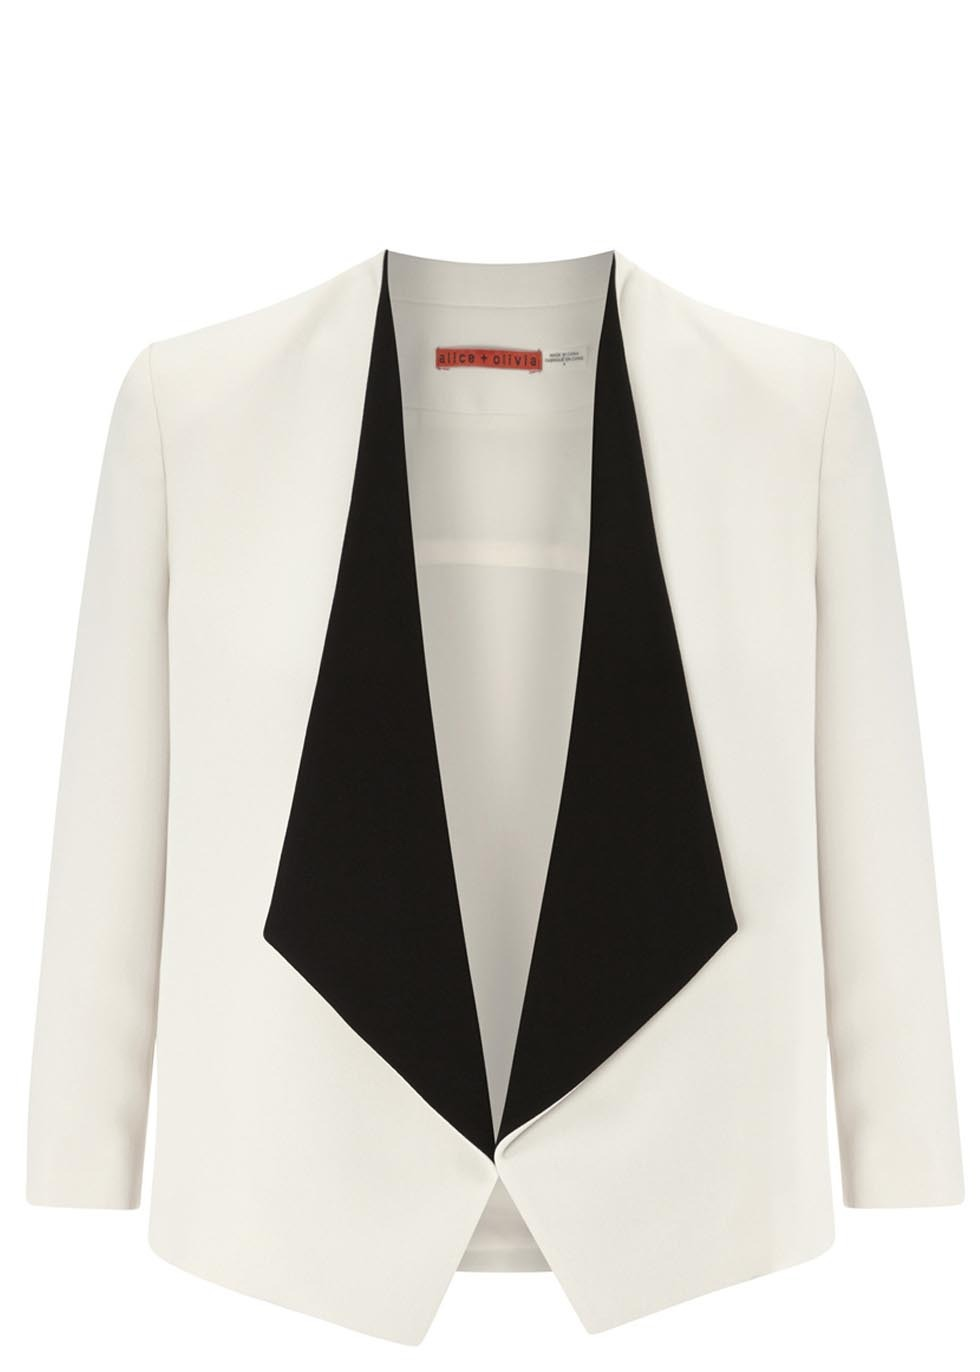 Oliver Monochrome Crepe Blazer - style: single breasted tuxedo; collar: shawl/waterfall; predominant colour: white; secondary colour: black; occasions: evening, occasion; length: standard; fit: straight cut (boxy); fibres: polyester/polyamide - mix; back detail: shorter hem at back than at front; sleeve length: 3/4 length; sleeve style: standard; texture group: crepes; collar break: low/open; pattern type: fabric; pattern: colourblock; season: s/s 2014; trends: monochrome; pattern size: big & busy (top)